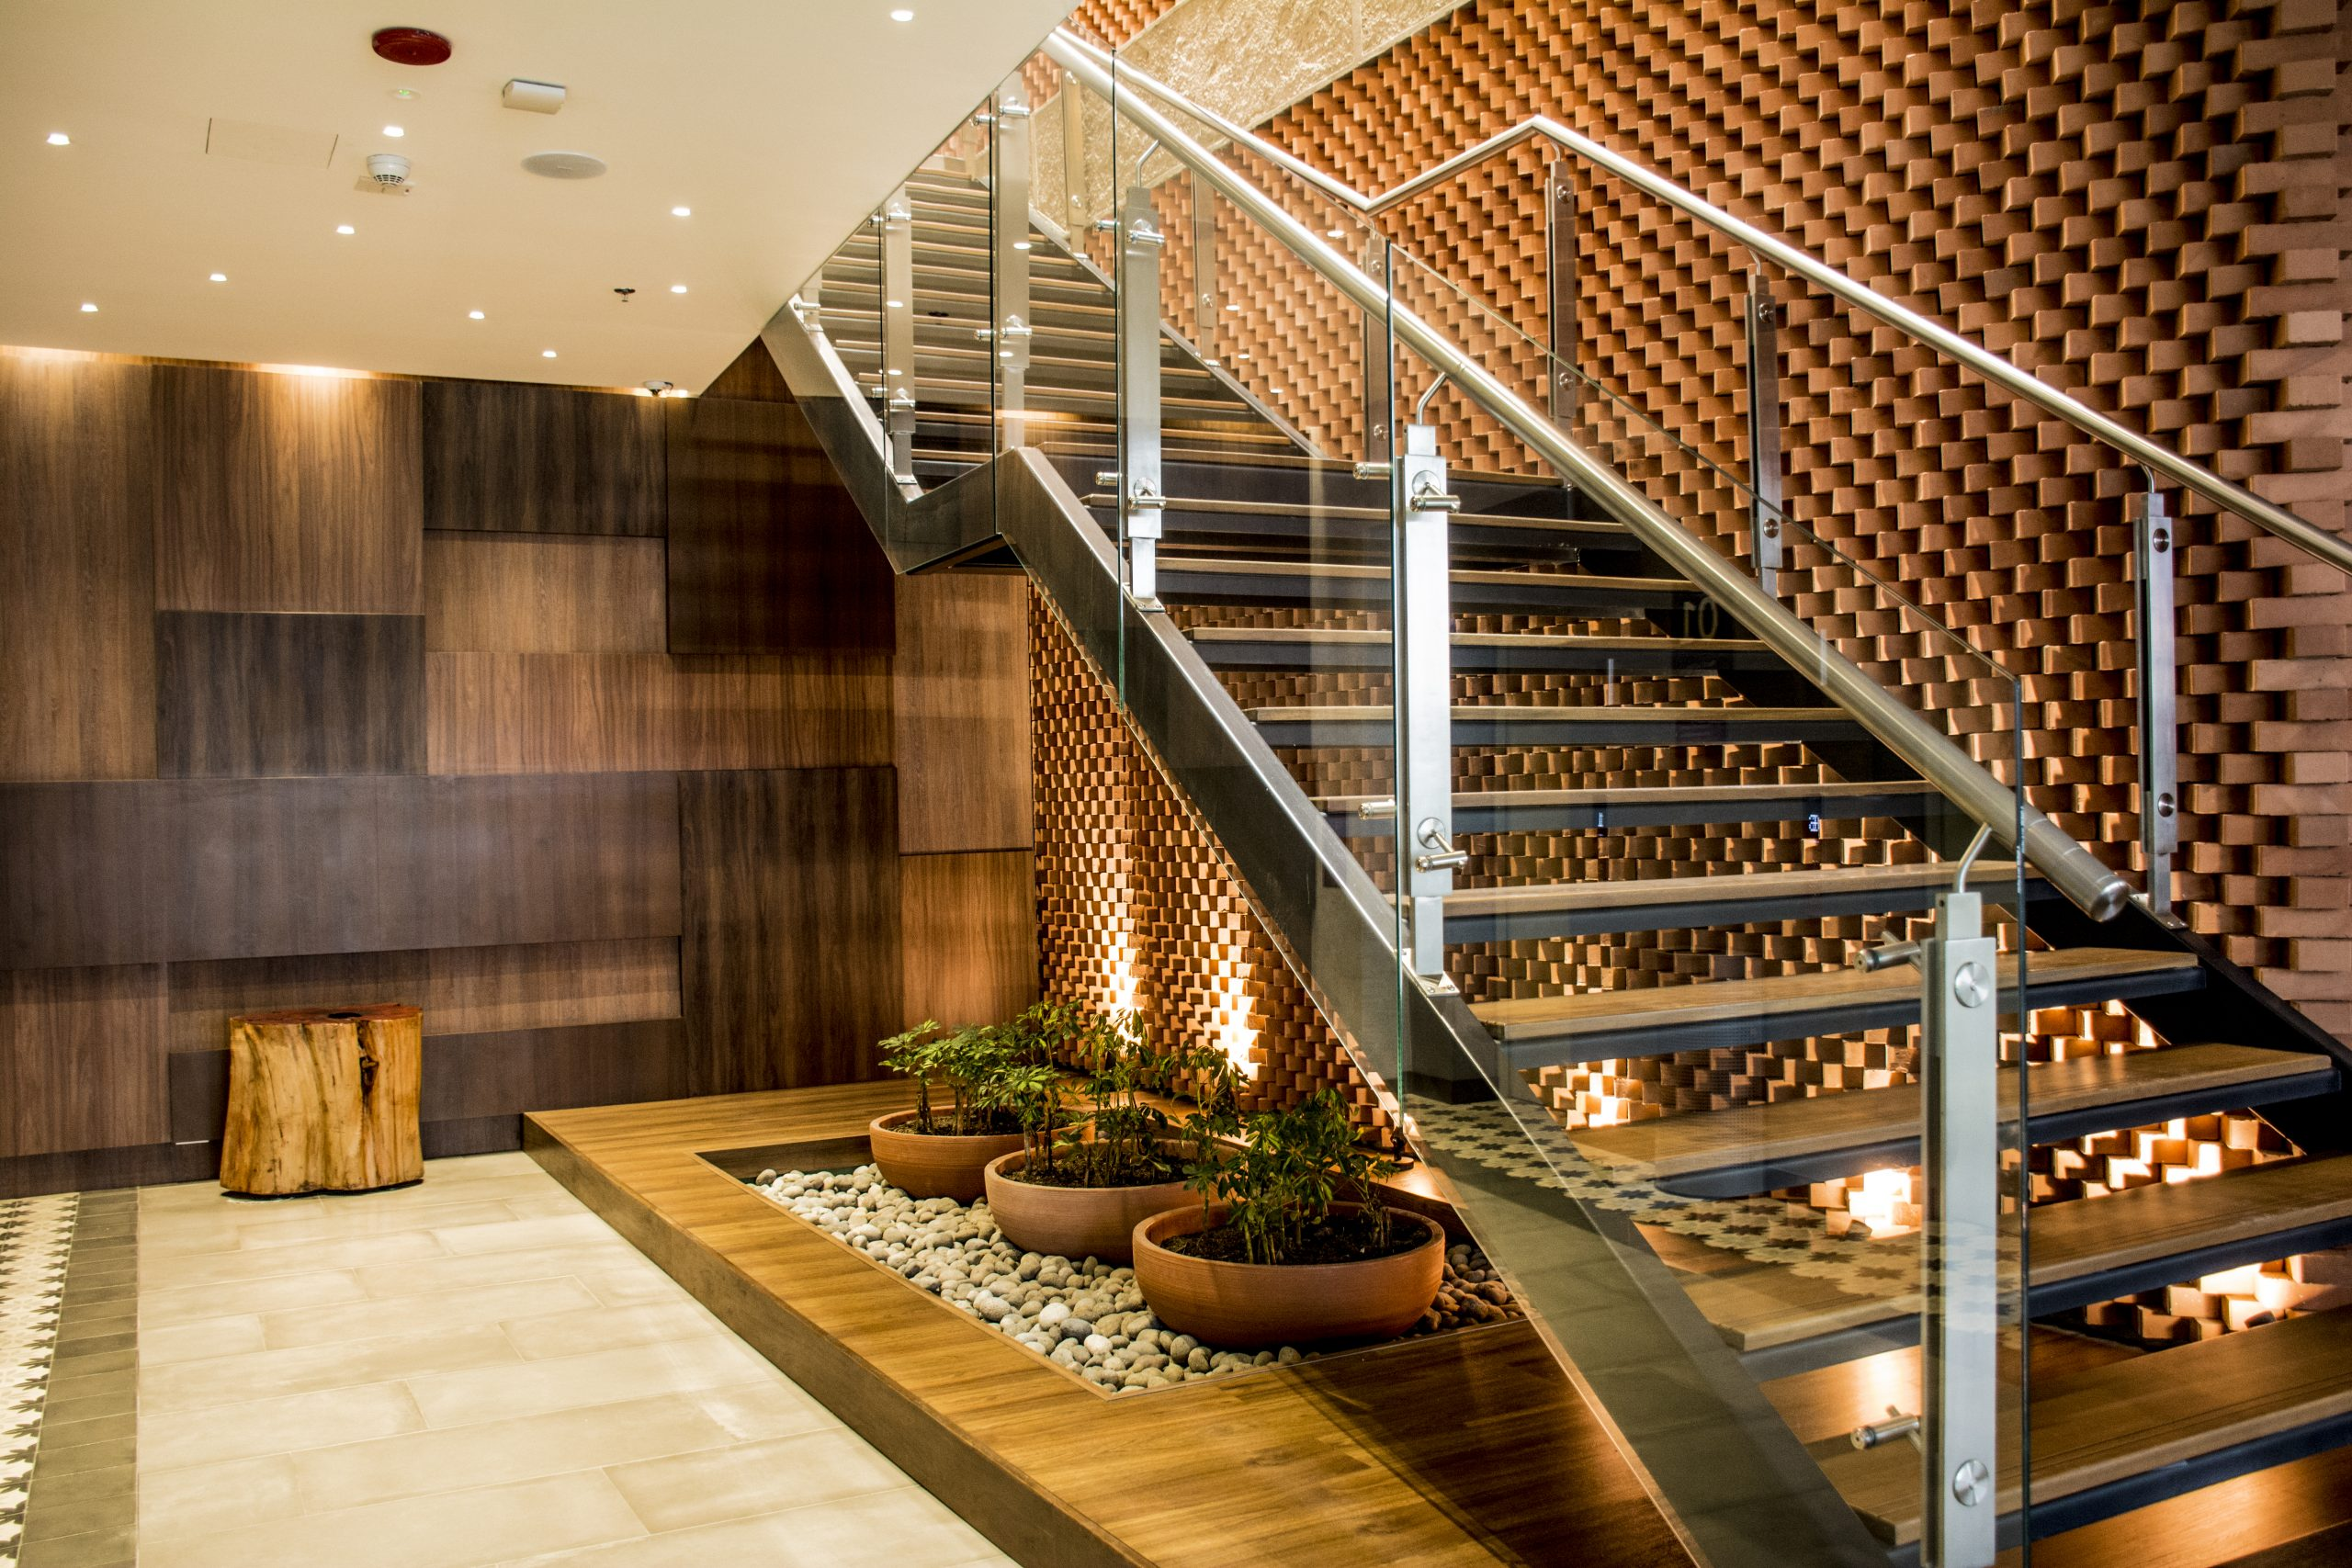 Hyatt Place Bogota: warm, colorful and modern